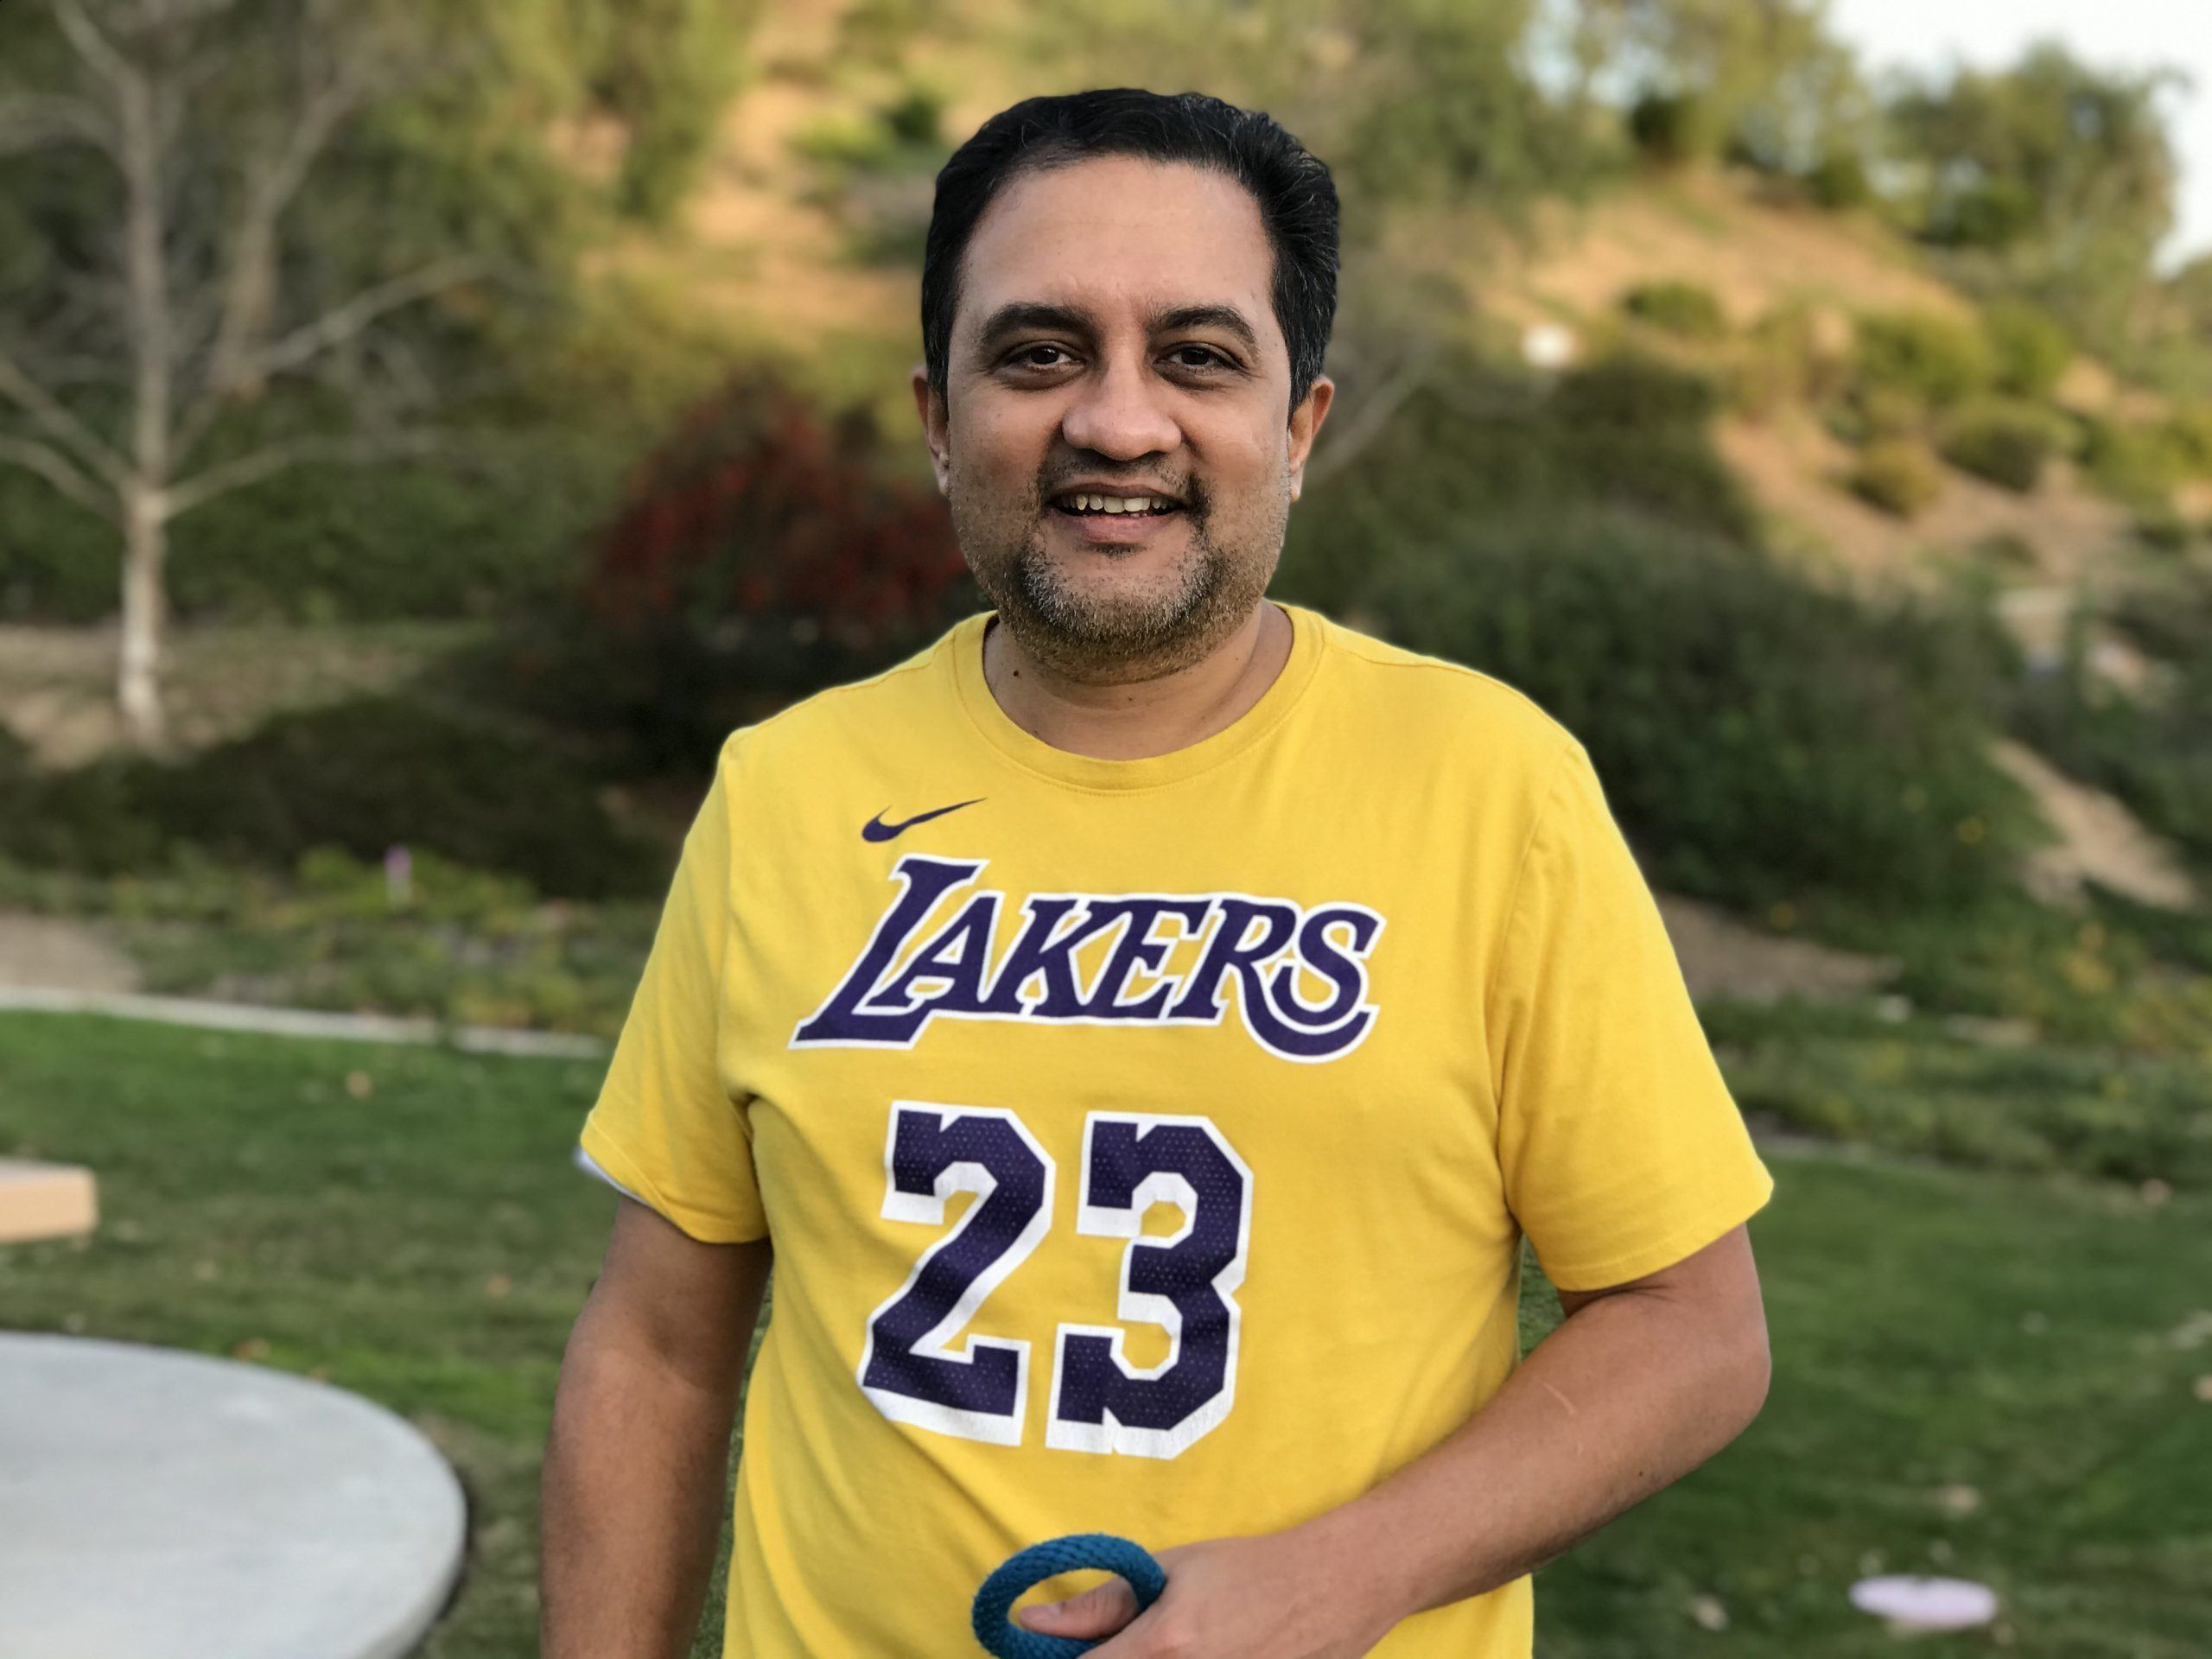 Laker fan at the park!